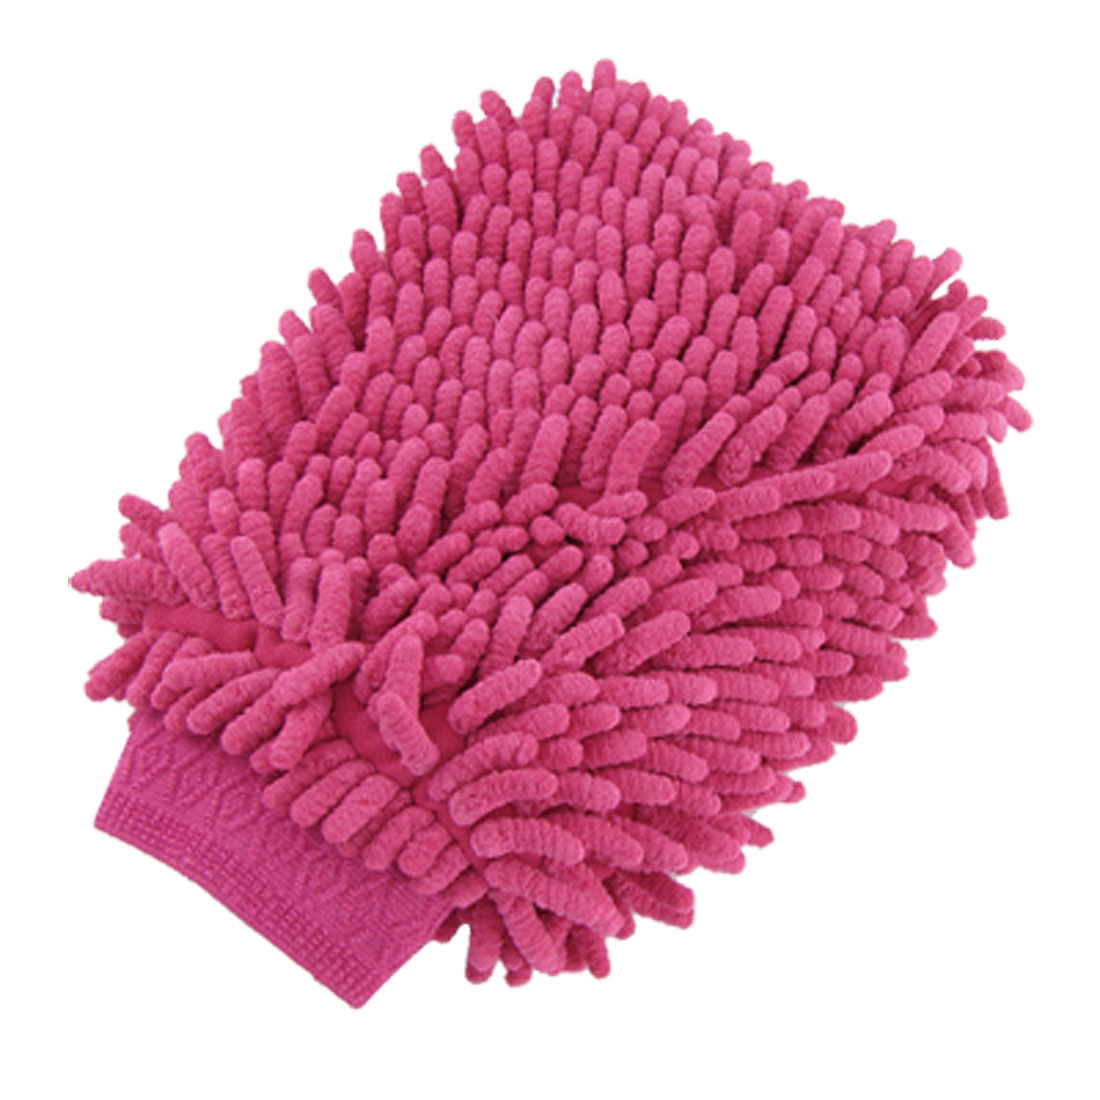 Fuchsia Double-side Cleaning Washing Microfiber Mitten Glove for Car Auto